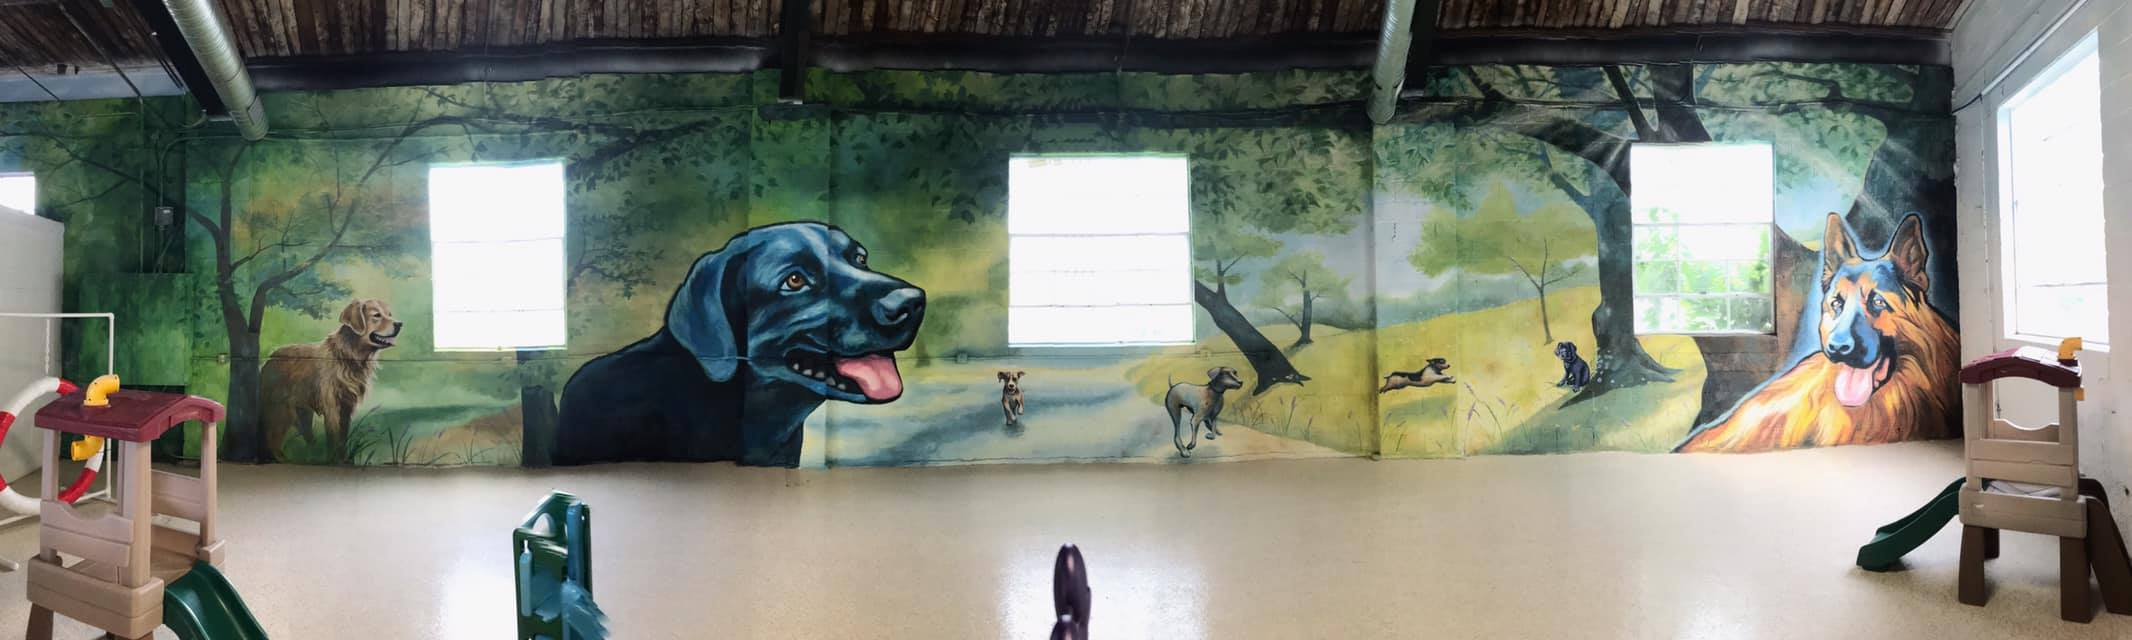 Tao's mural at  Wagging Tails Pet Resort & Spaw, West Hartford 's only indoor dog park. Focal wall completed in 2019.